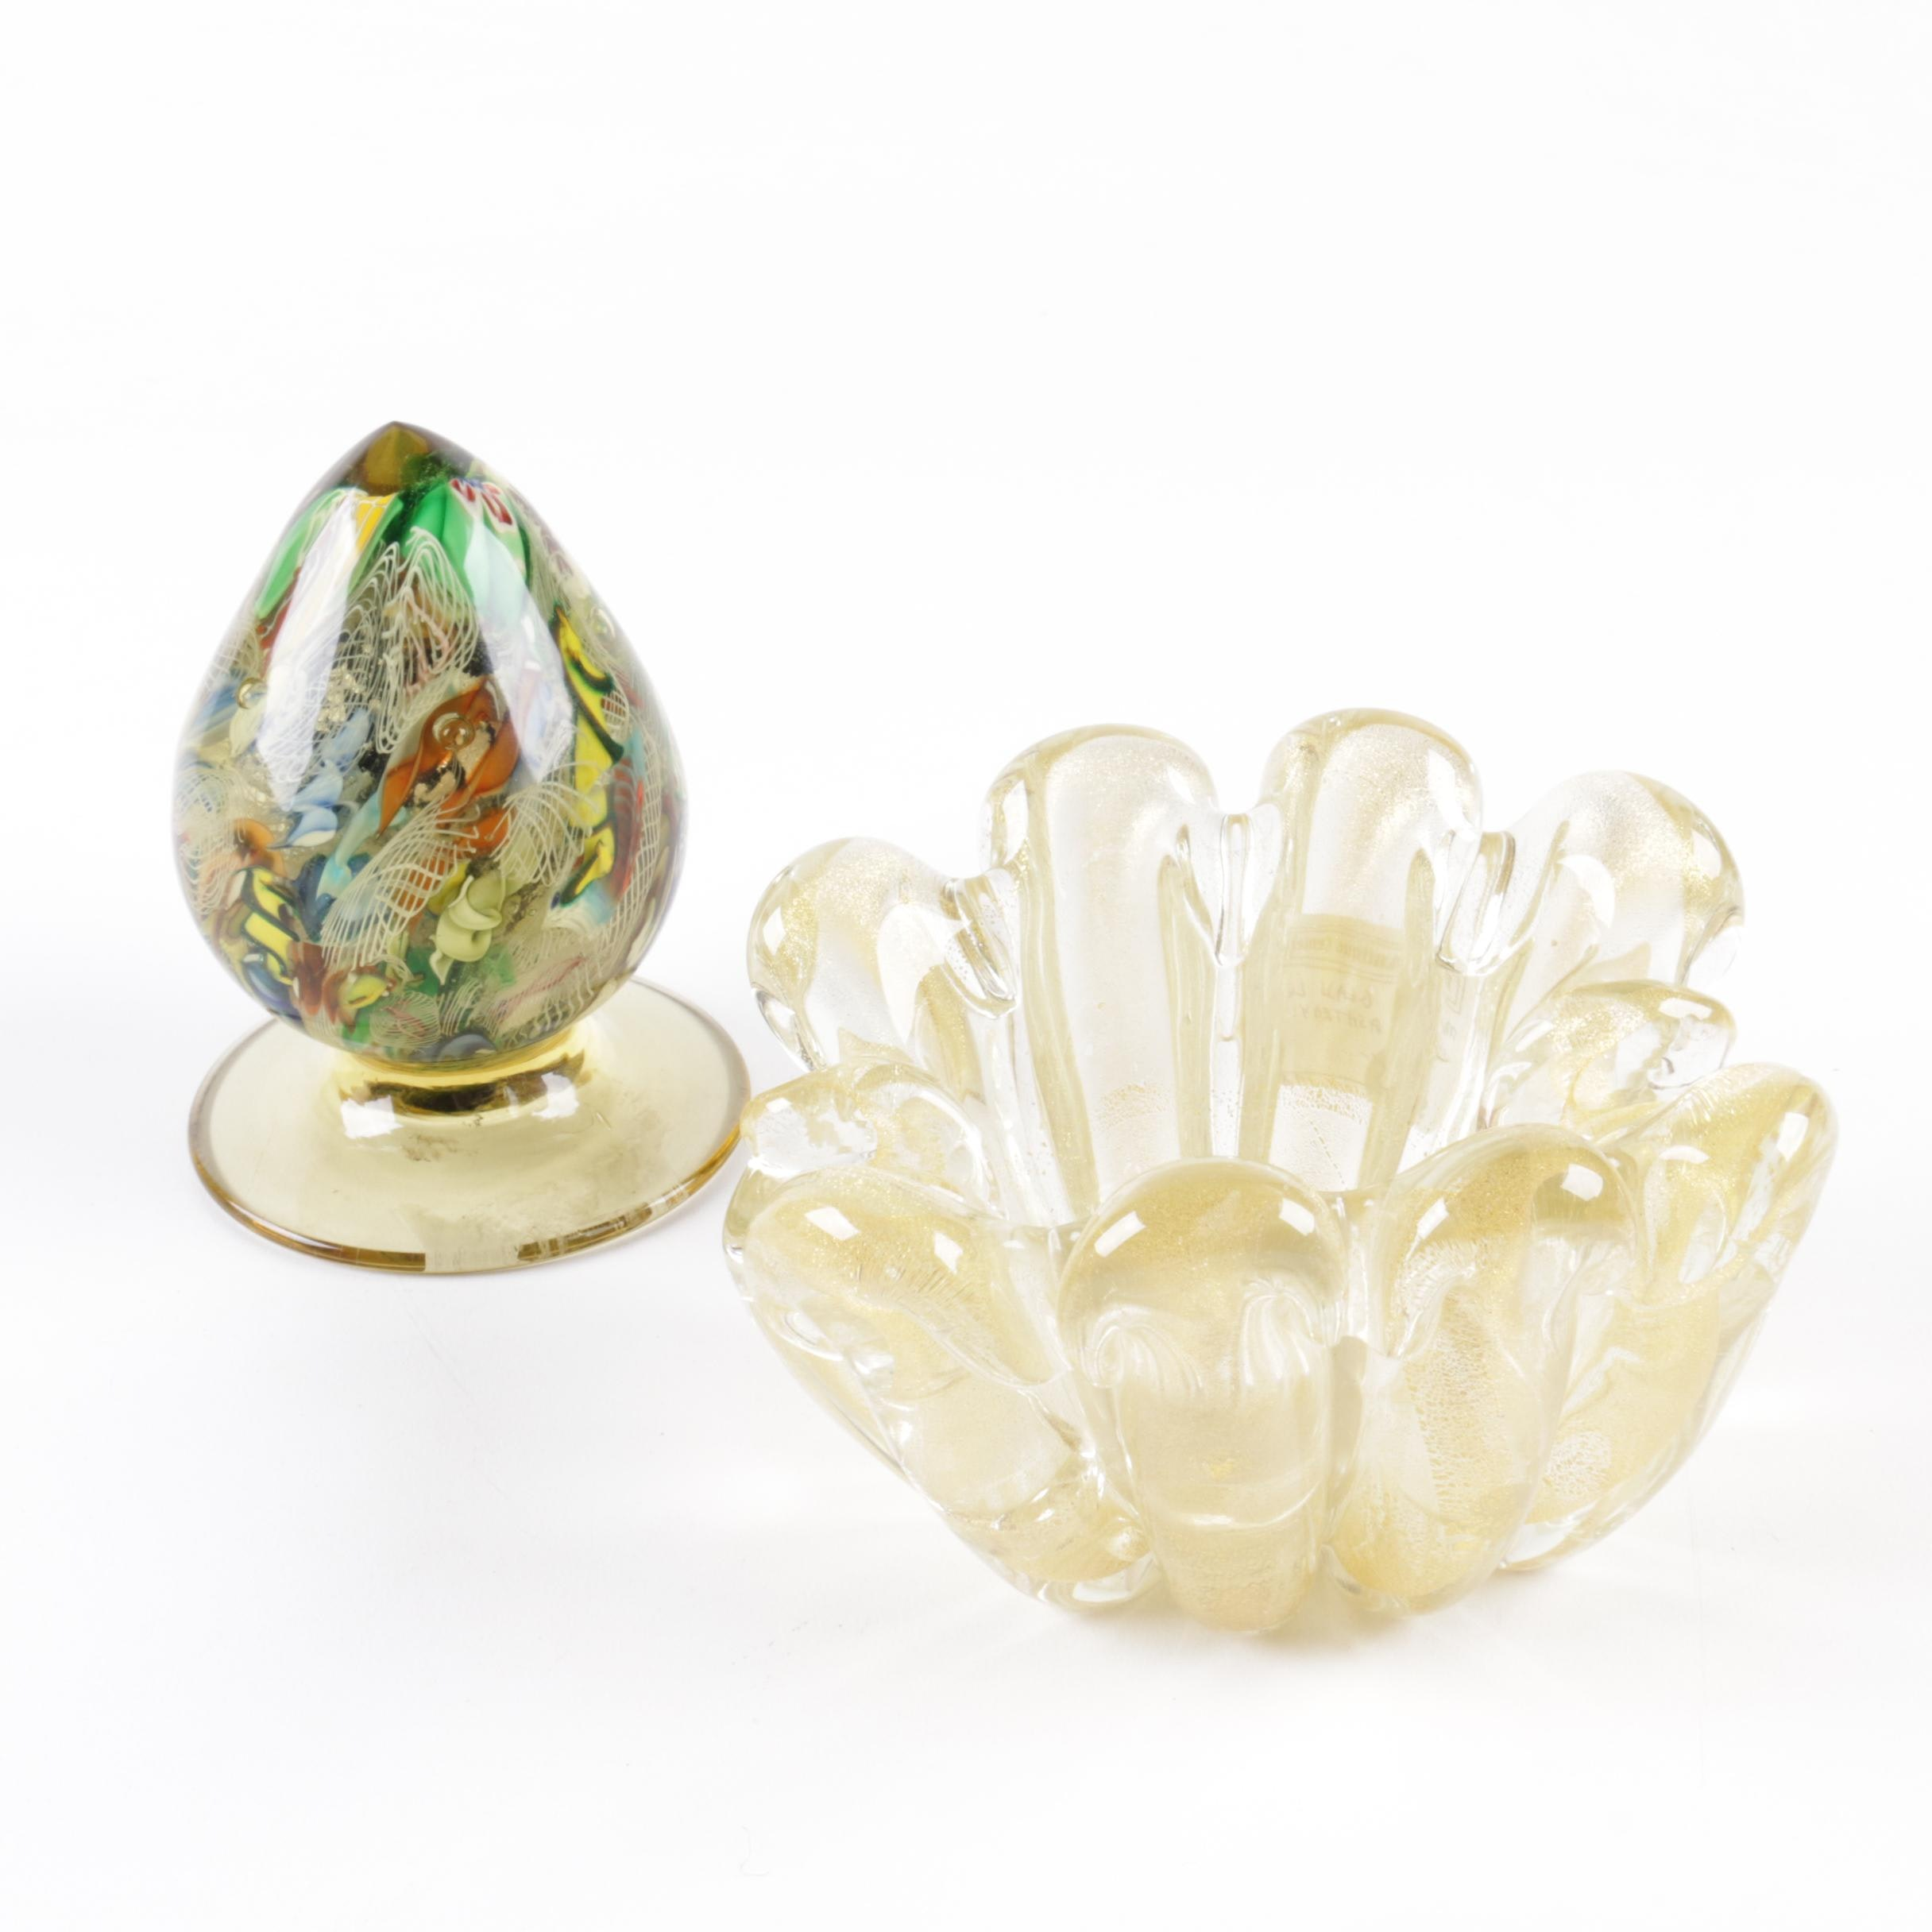 Mouth-Blown Aventurine Ash Receiver with Art Glass Paperweight